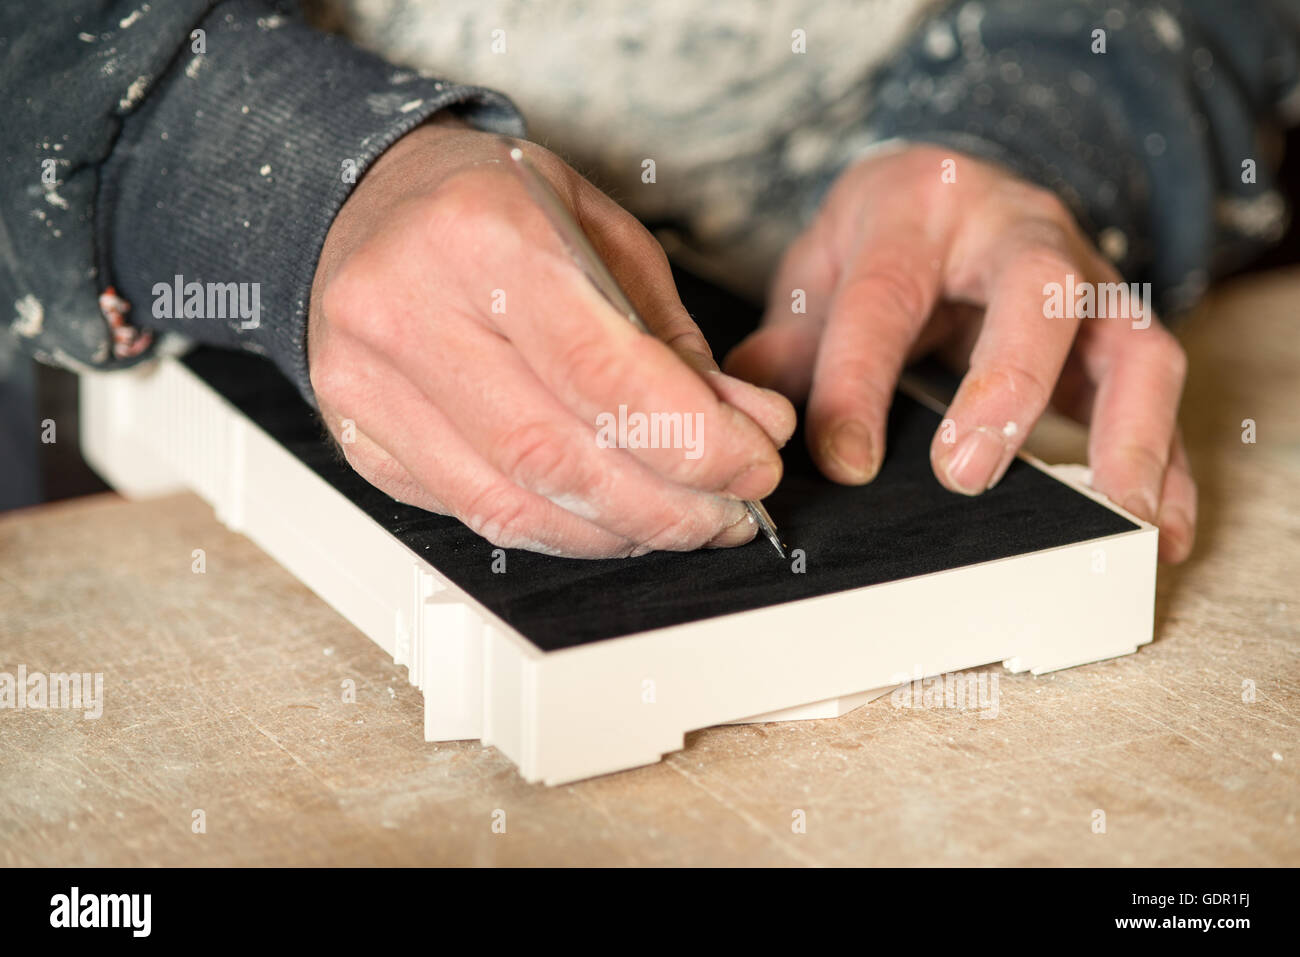 A hand with a precision knife cutting a portion of black felt paper on a plater model - Stock Image